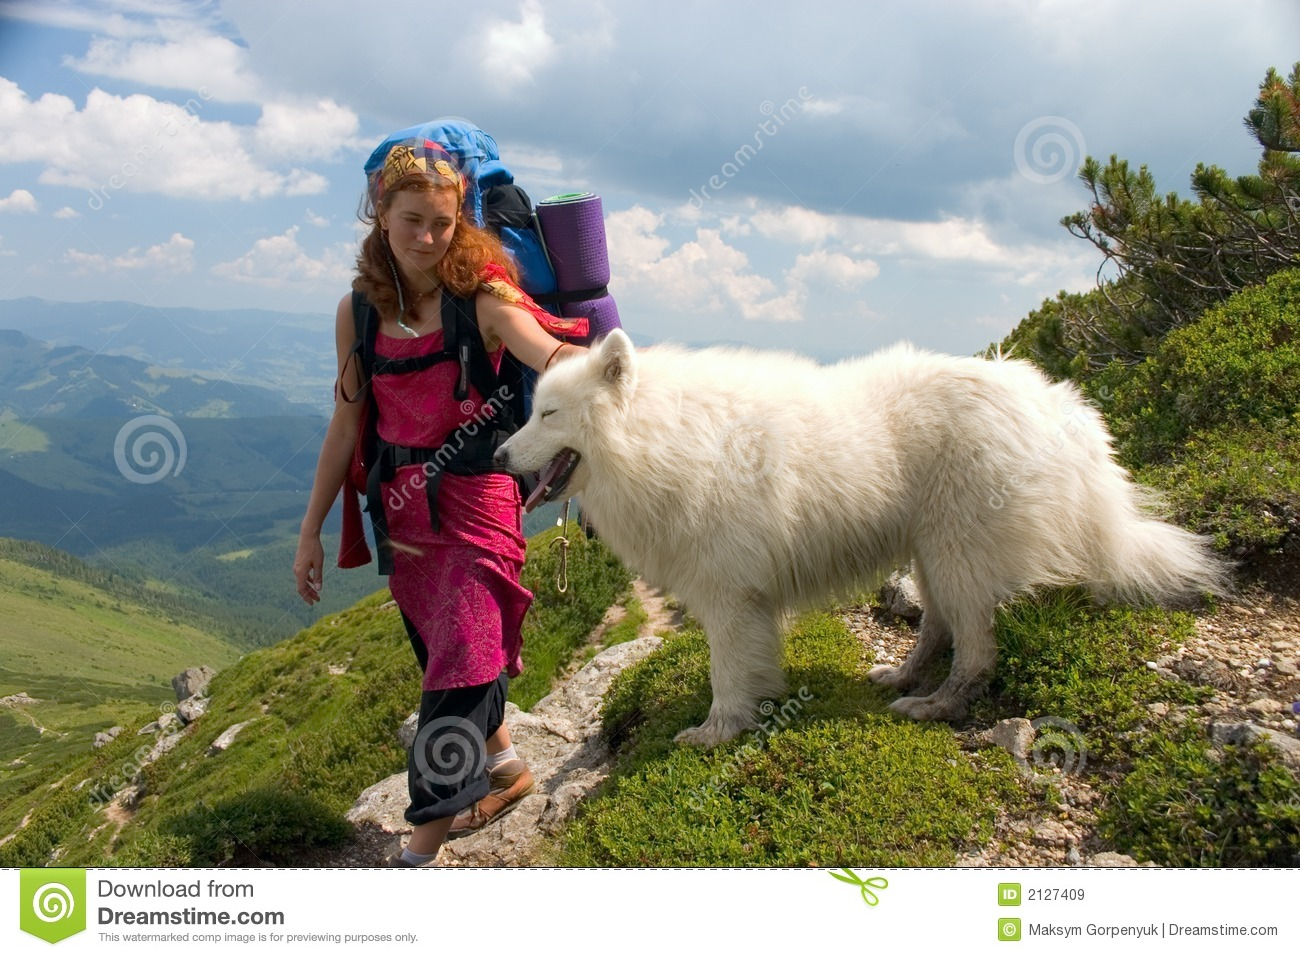 Backpacker girl with dog